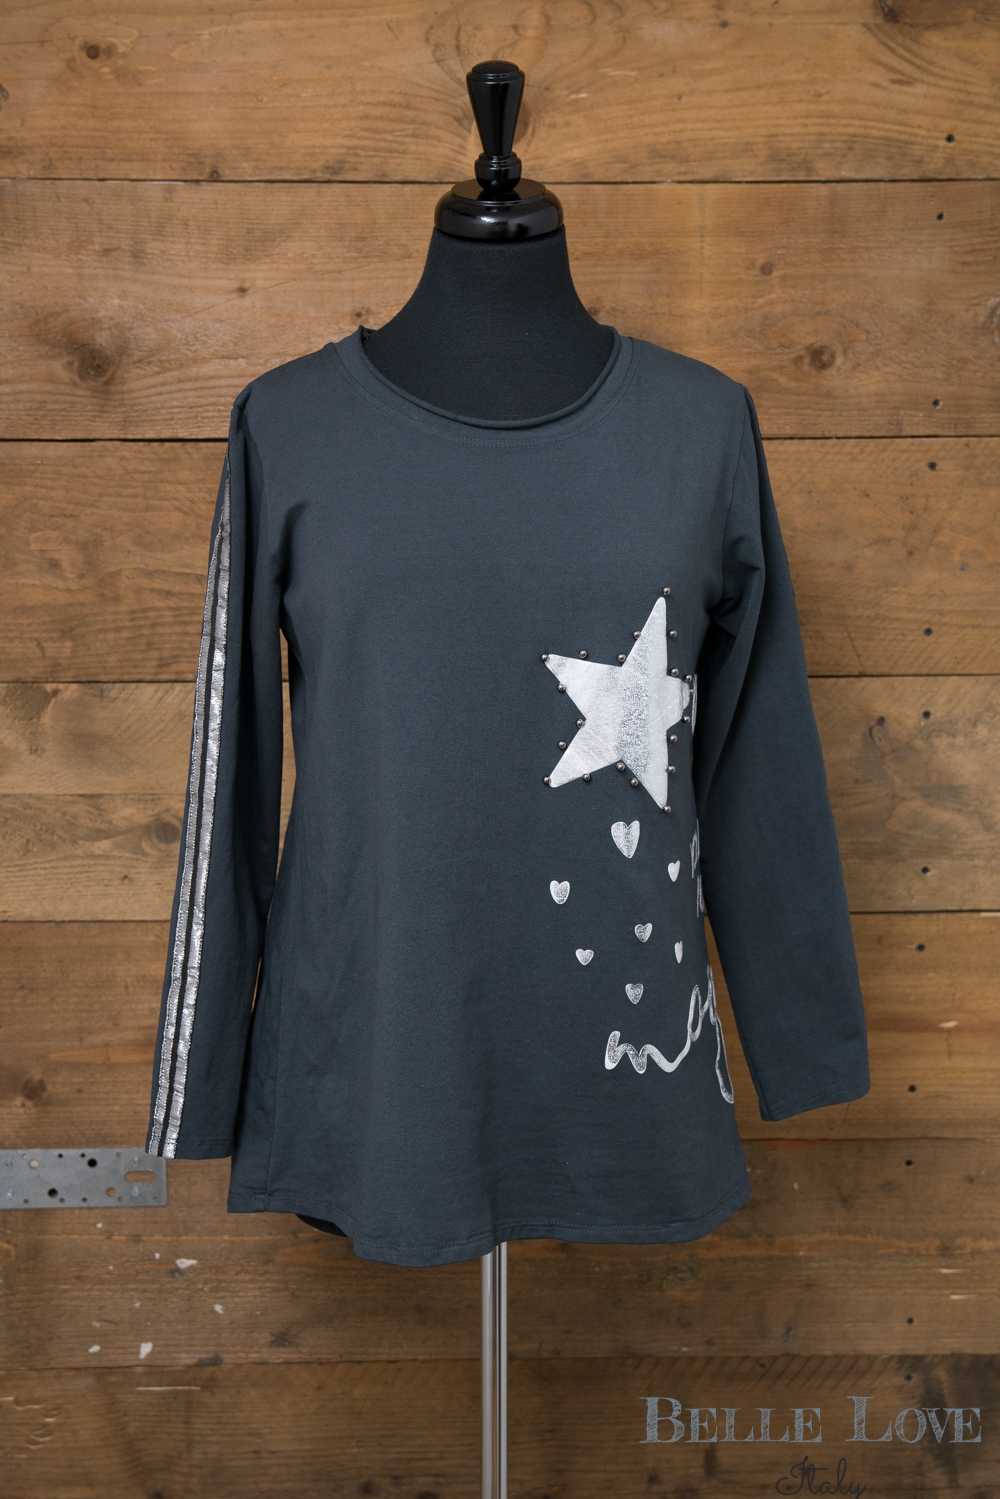 Belle Love Italy Star And Hearts Top